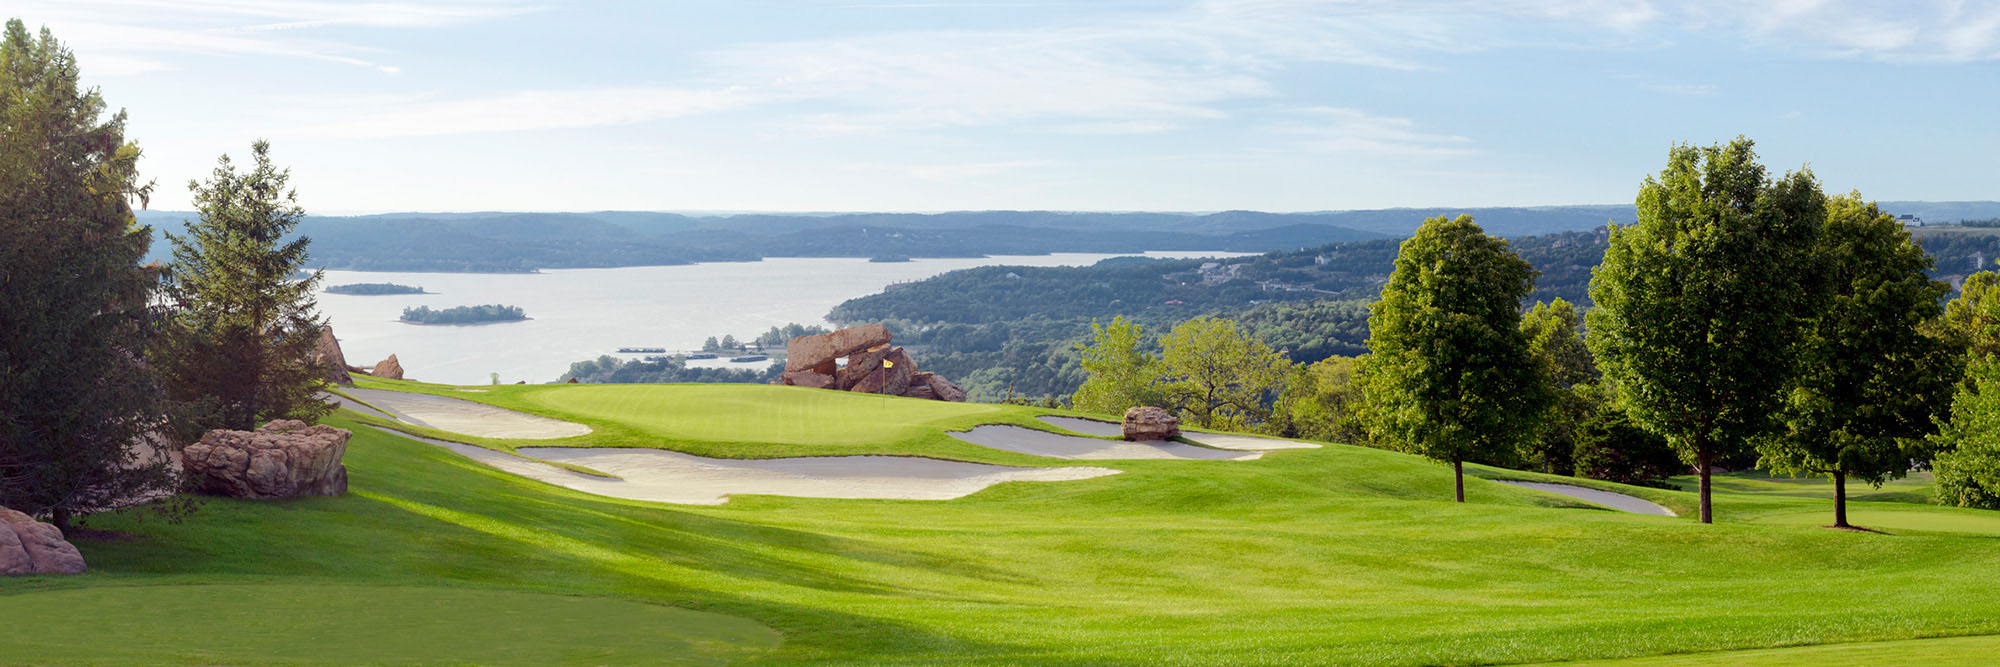 Golf Course Image - Top of the Rock No. 9